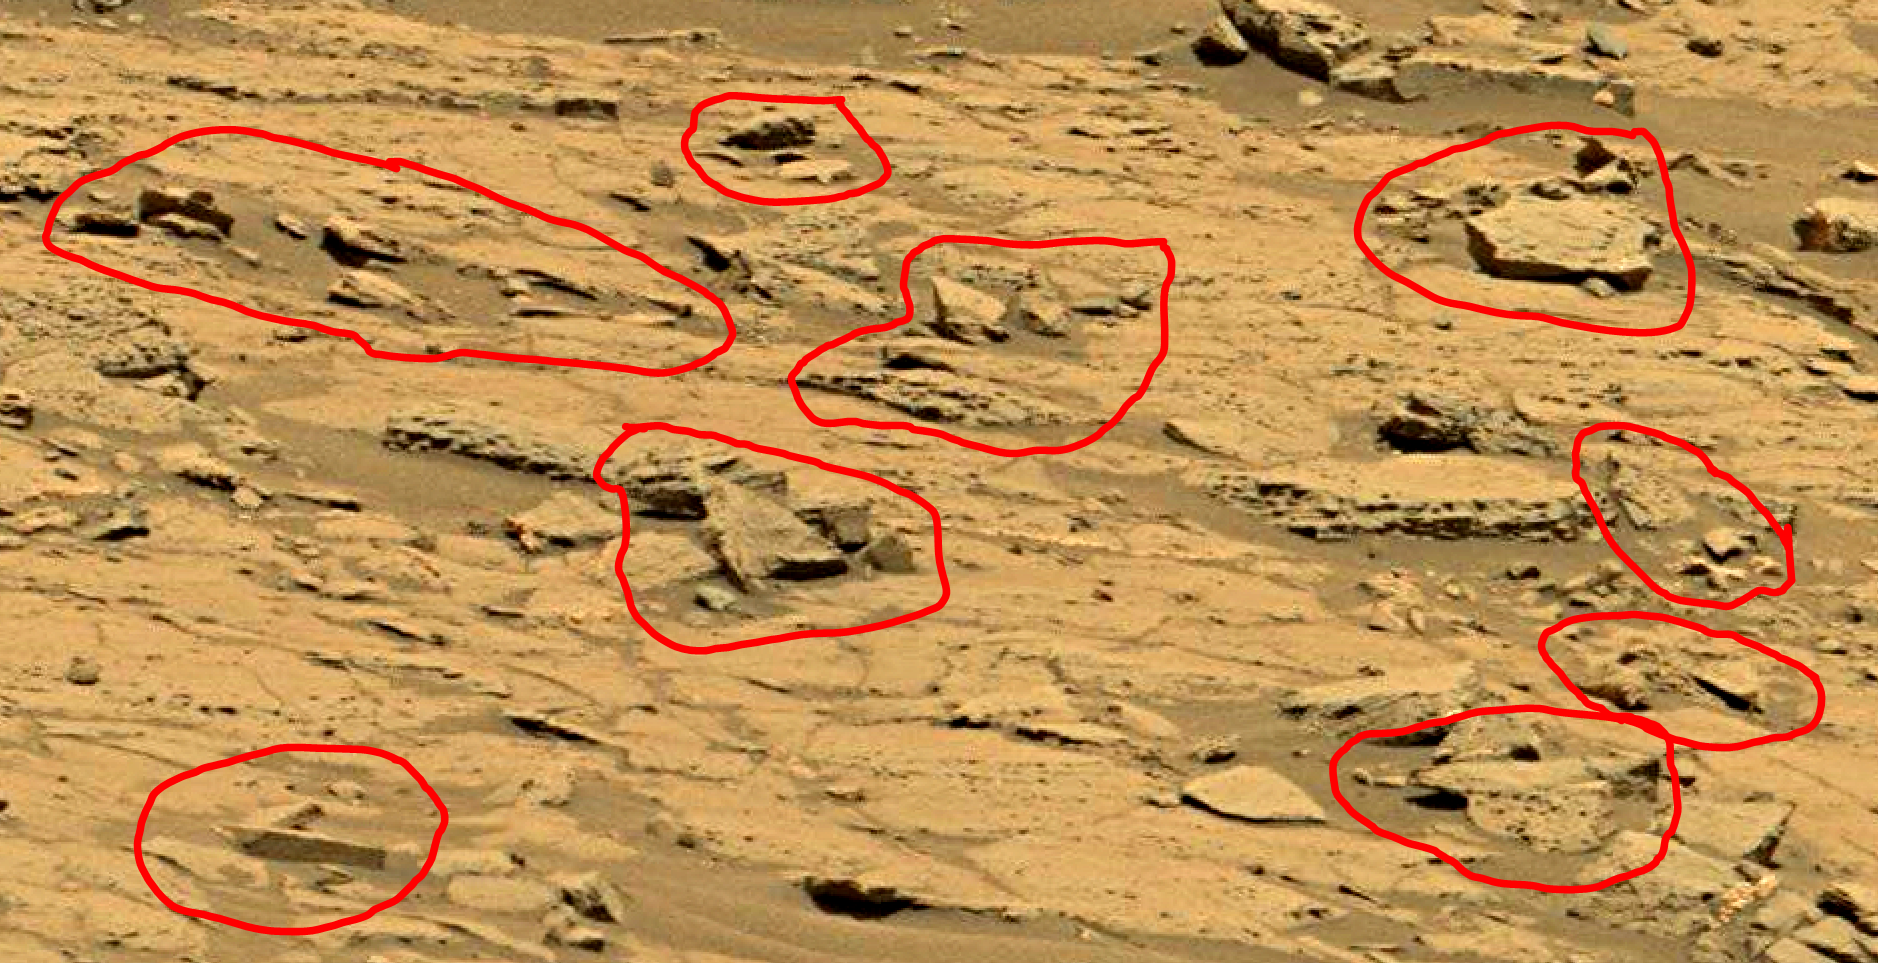 mars sol 1353 anomaly-artifacts 58a was life on mars